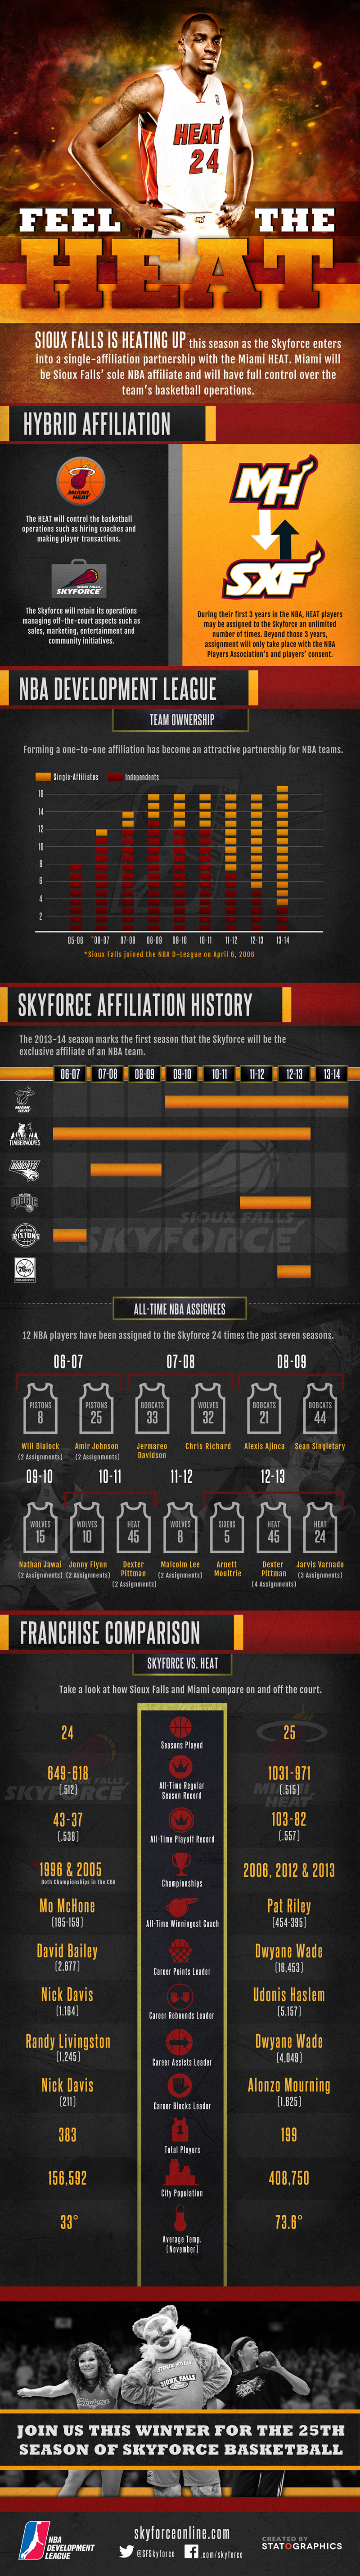 Sioux Falls Skyforce - Miami Heat Infographic